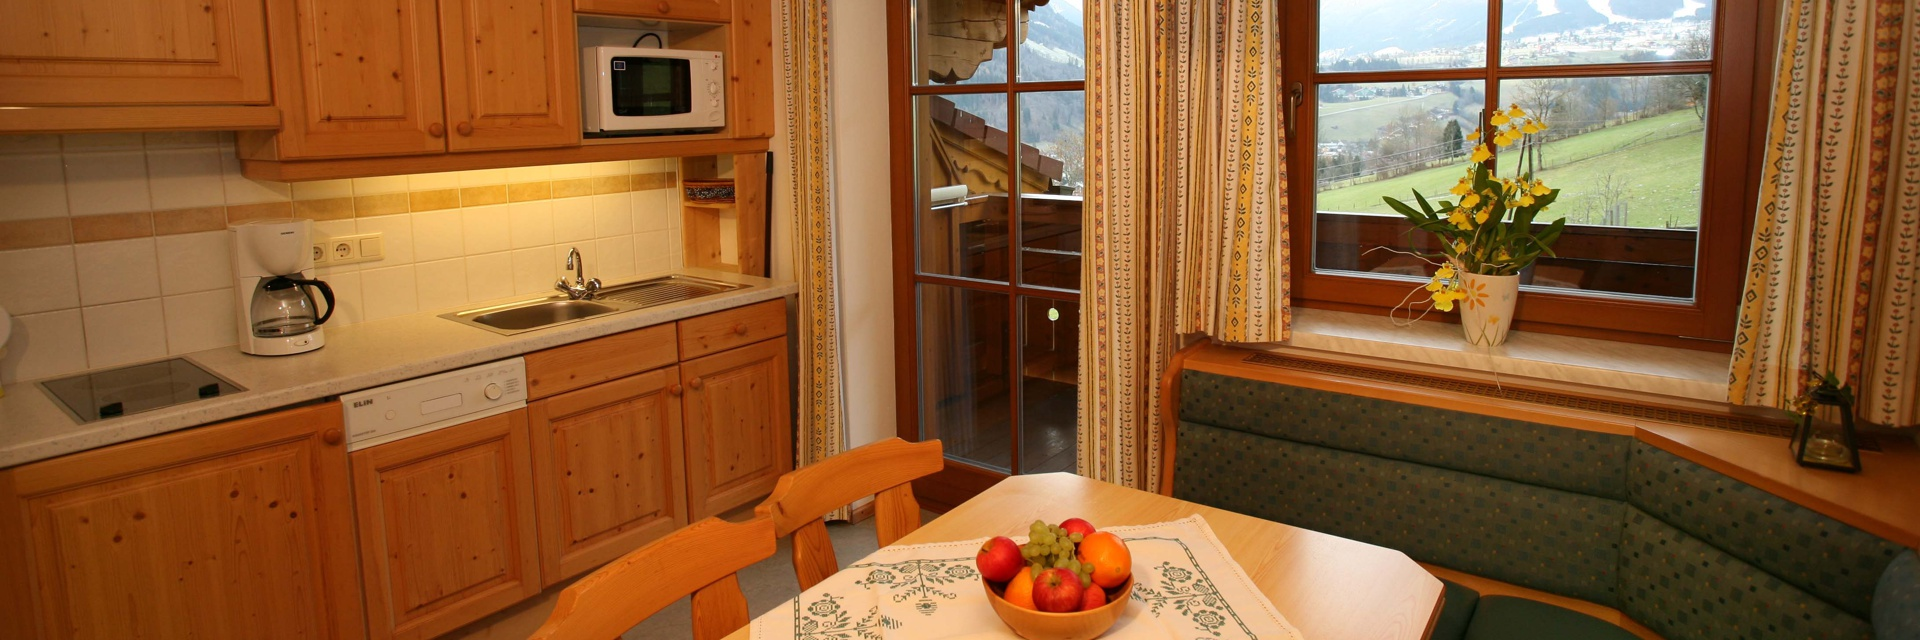 Appartement Feldlhof, Schladming